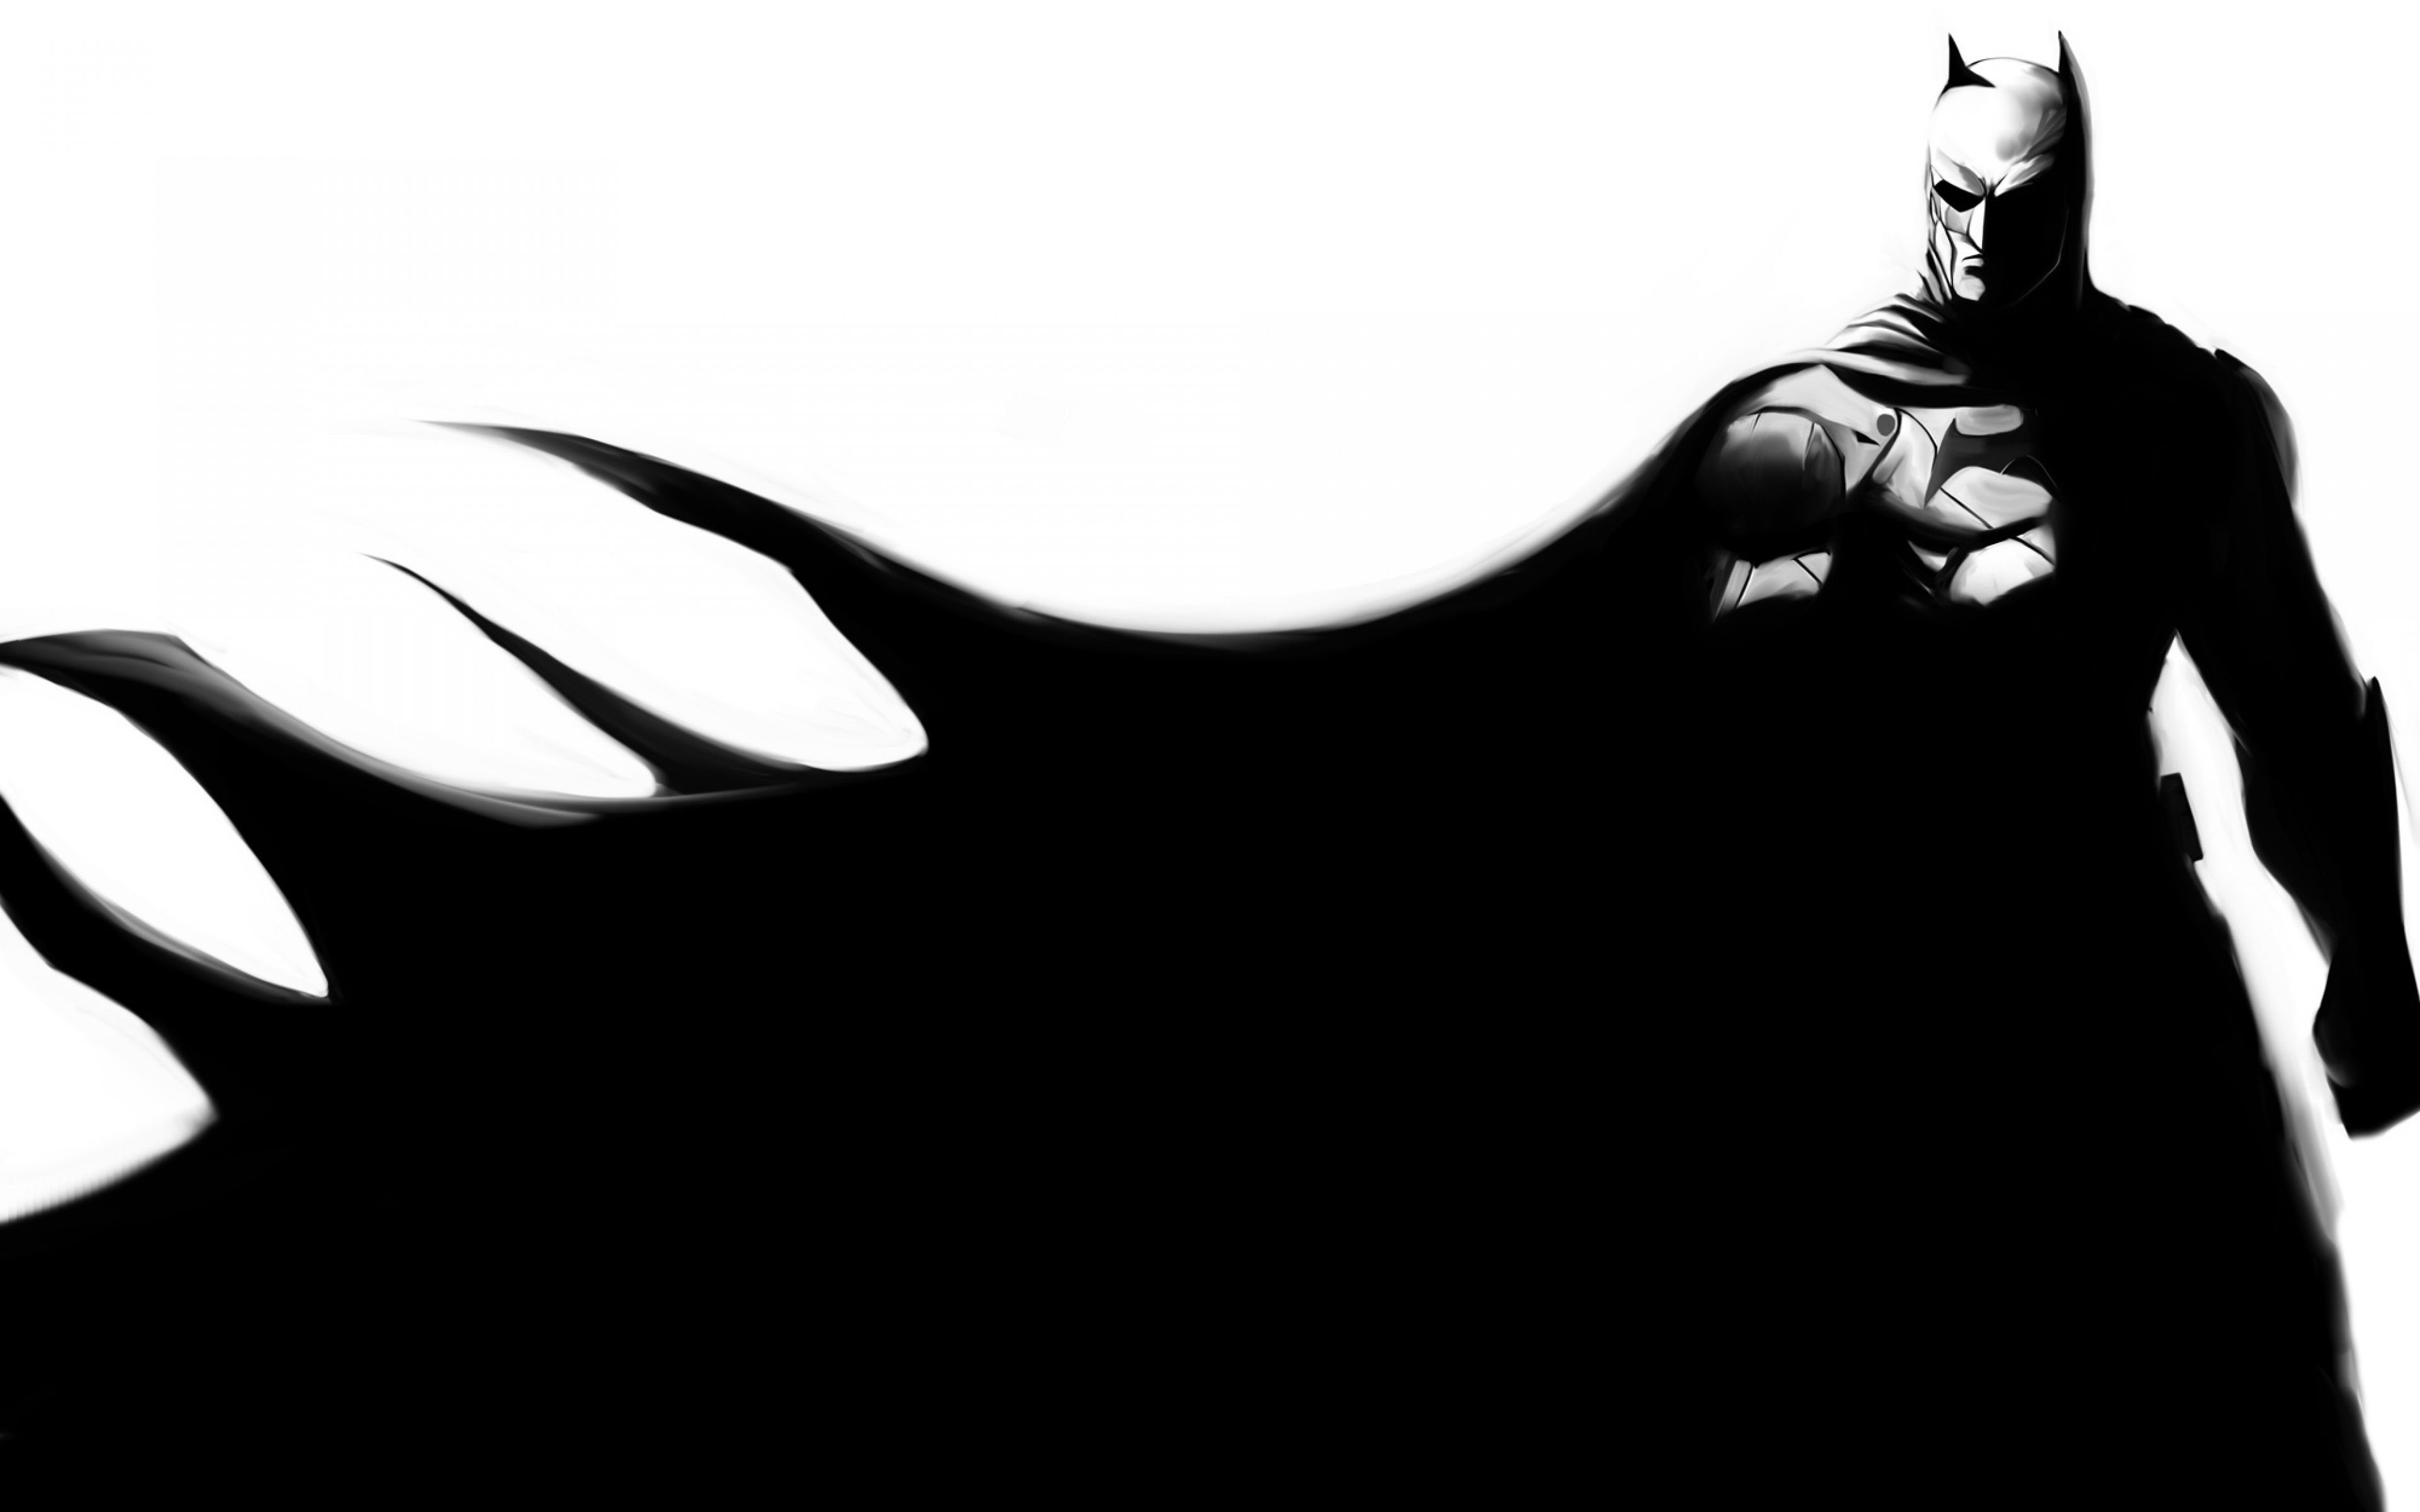 Batman Images Black And White Free Download On Clipartmag